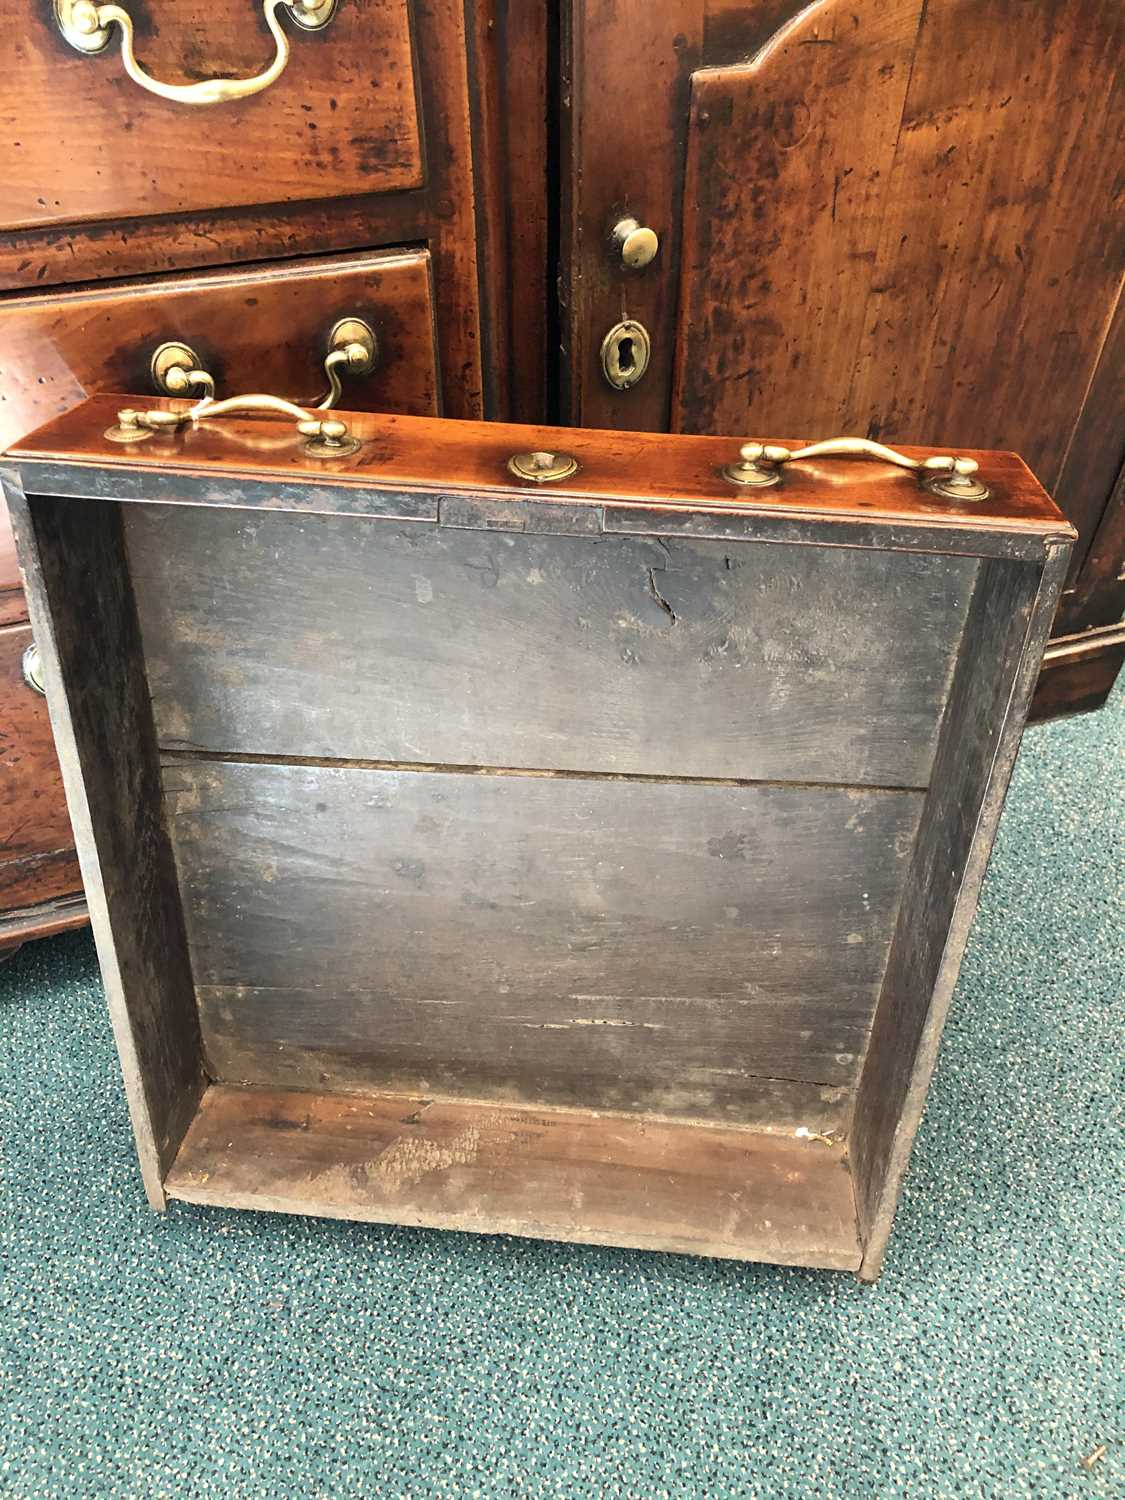 A late 18th century fruitwood or yew wood breakfront dresser, North Wales - Image 9 of 16